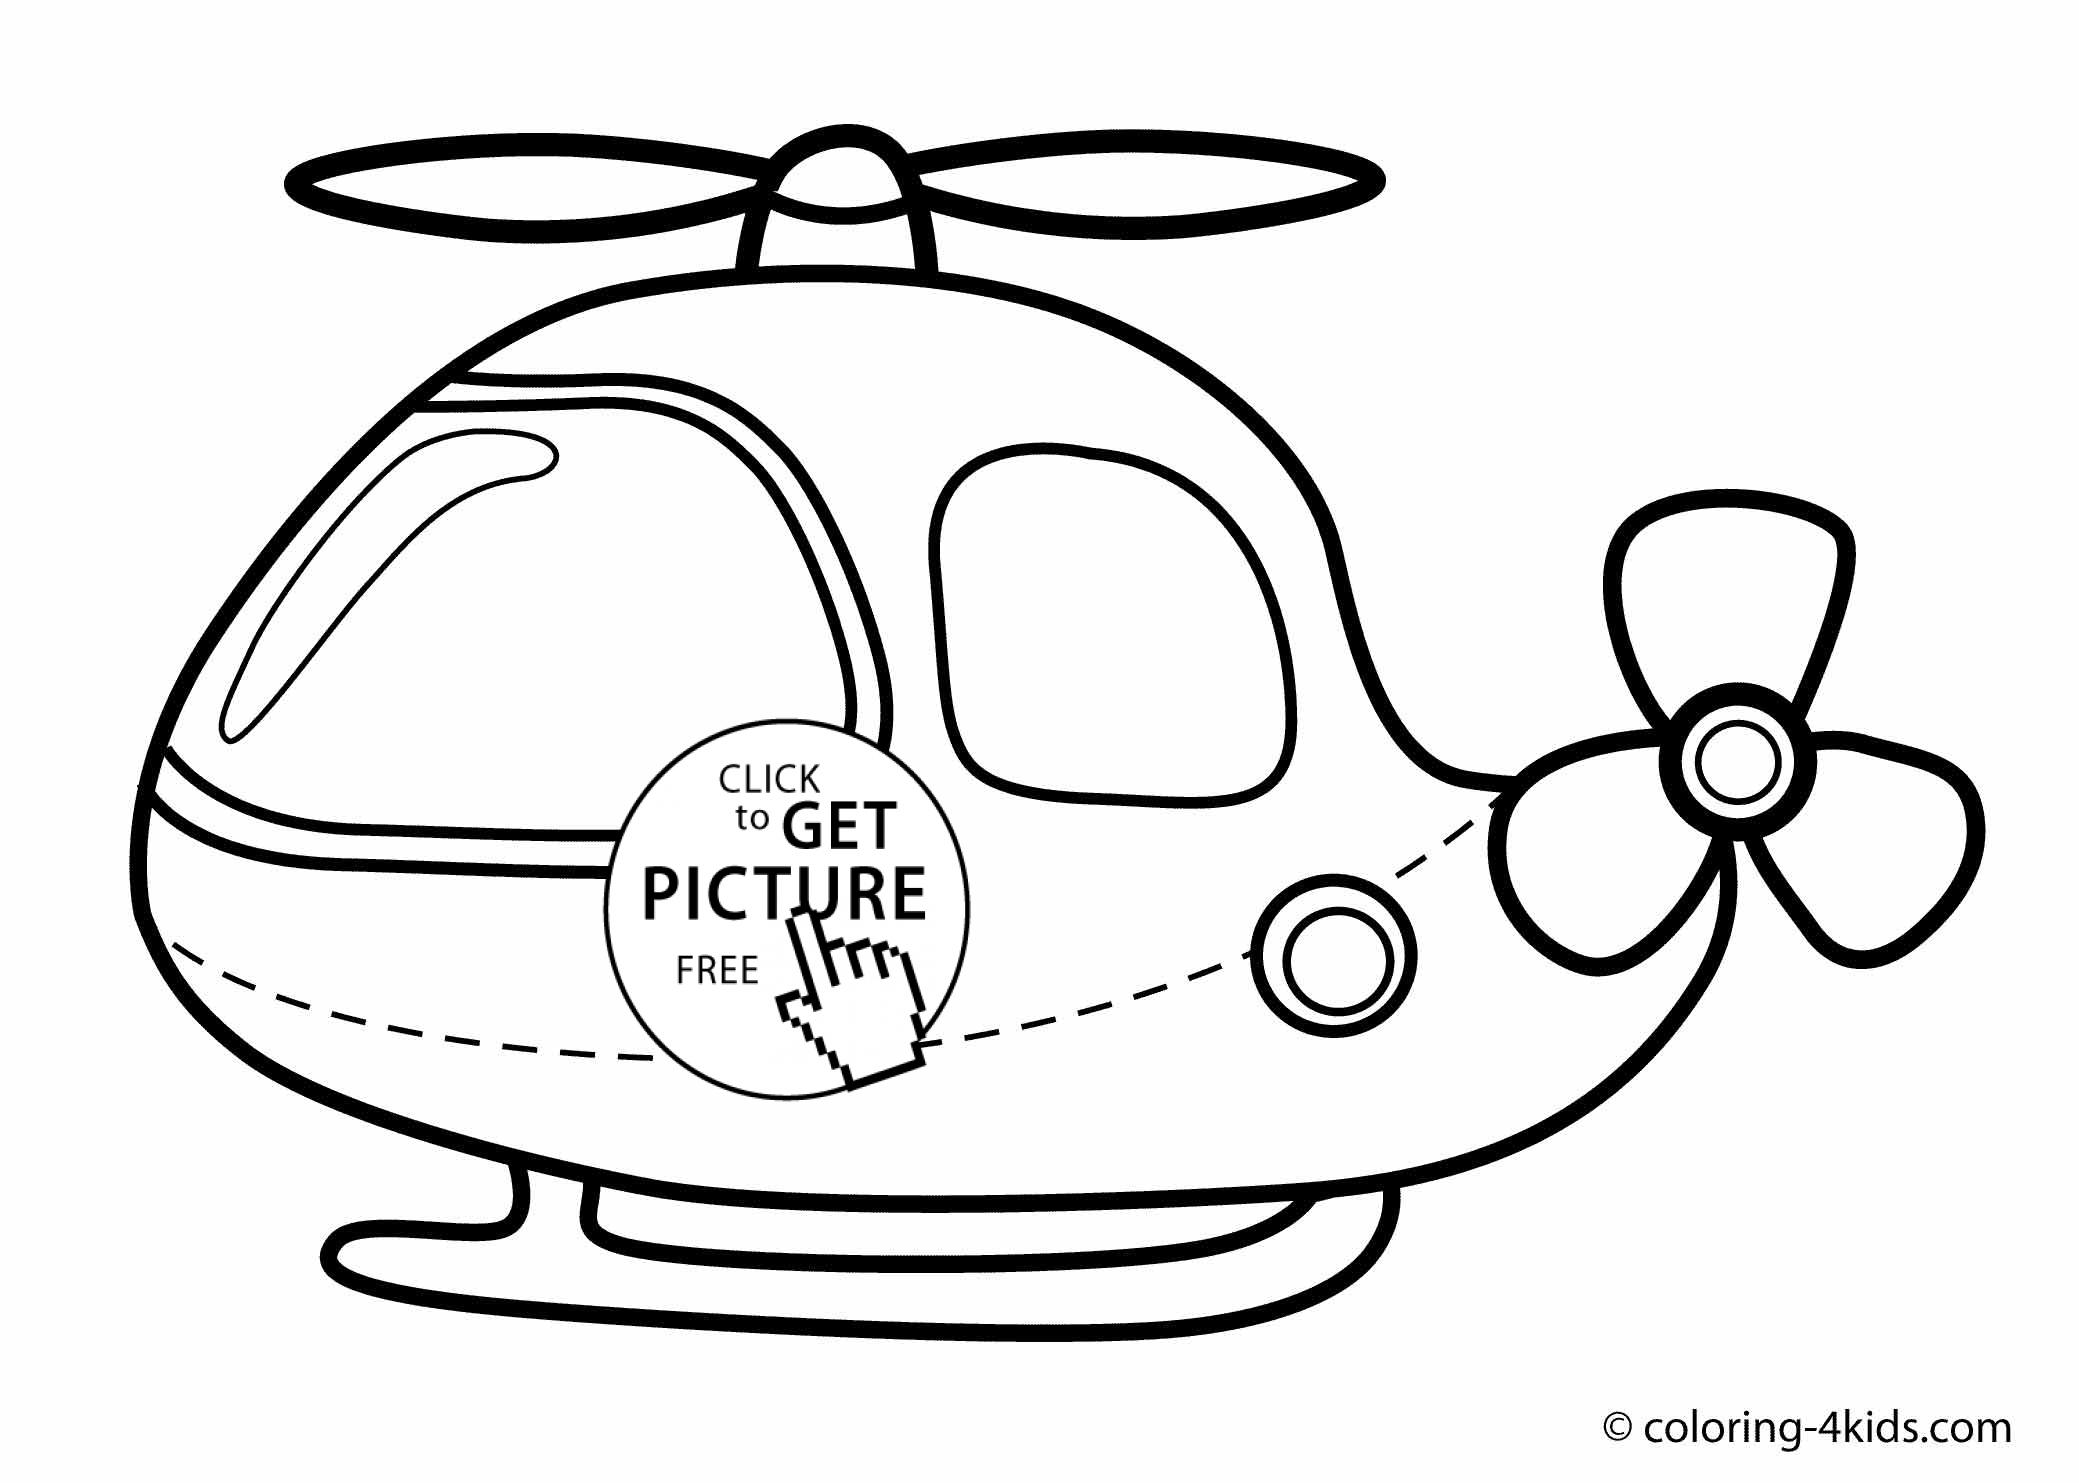 Helicopter clipart to color in banner free download Helicopter coloring pages, helicopter coloring book for kids ... banner free download